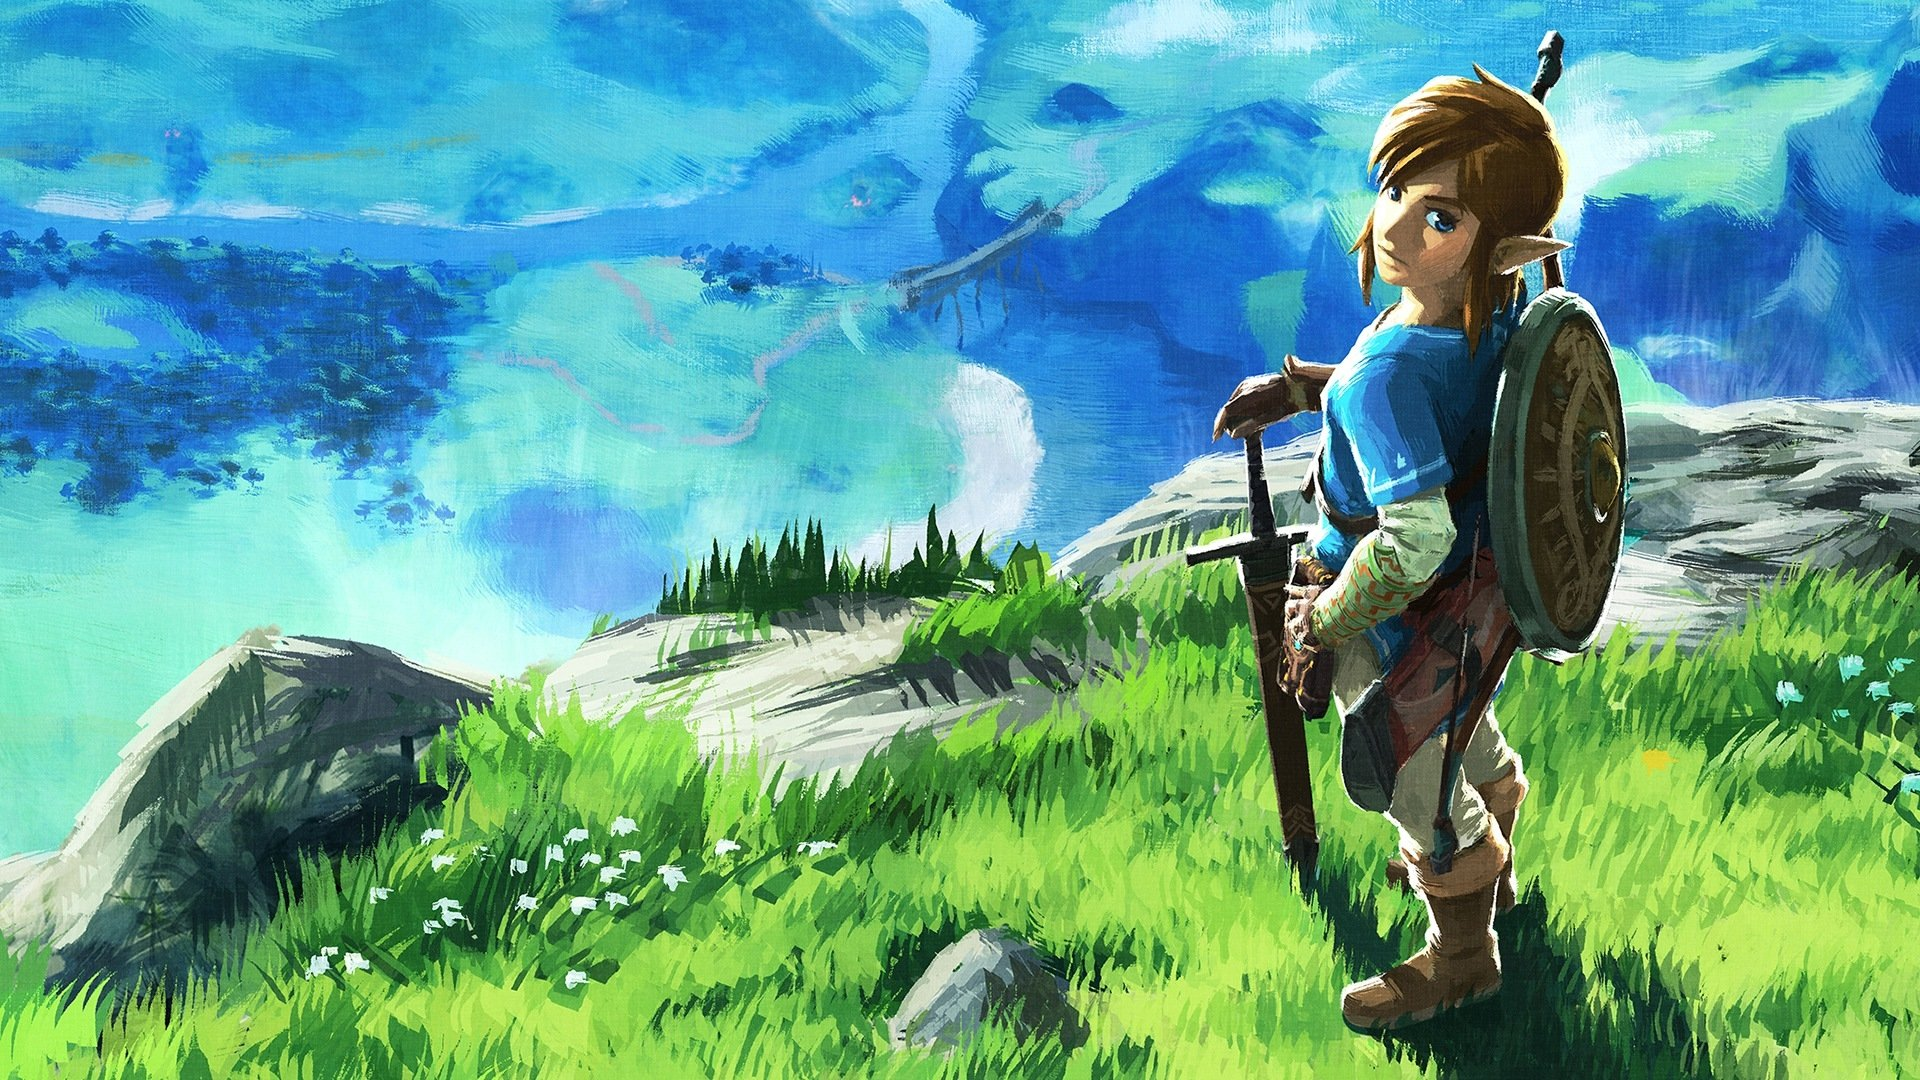 Breath Of The Wild Wallpaper Hd: Zelda Breath Of The Wild HD Wallpaper